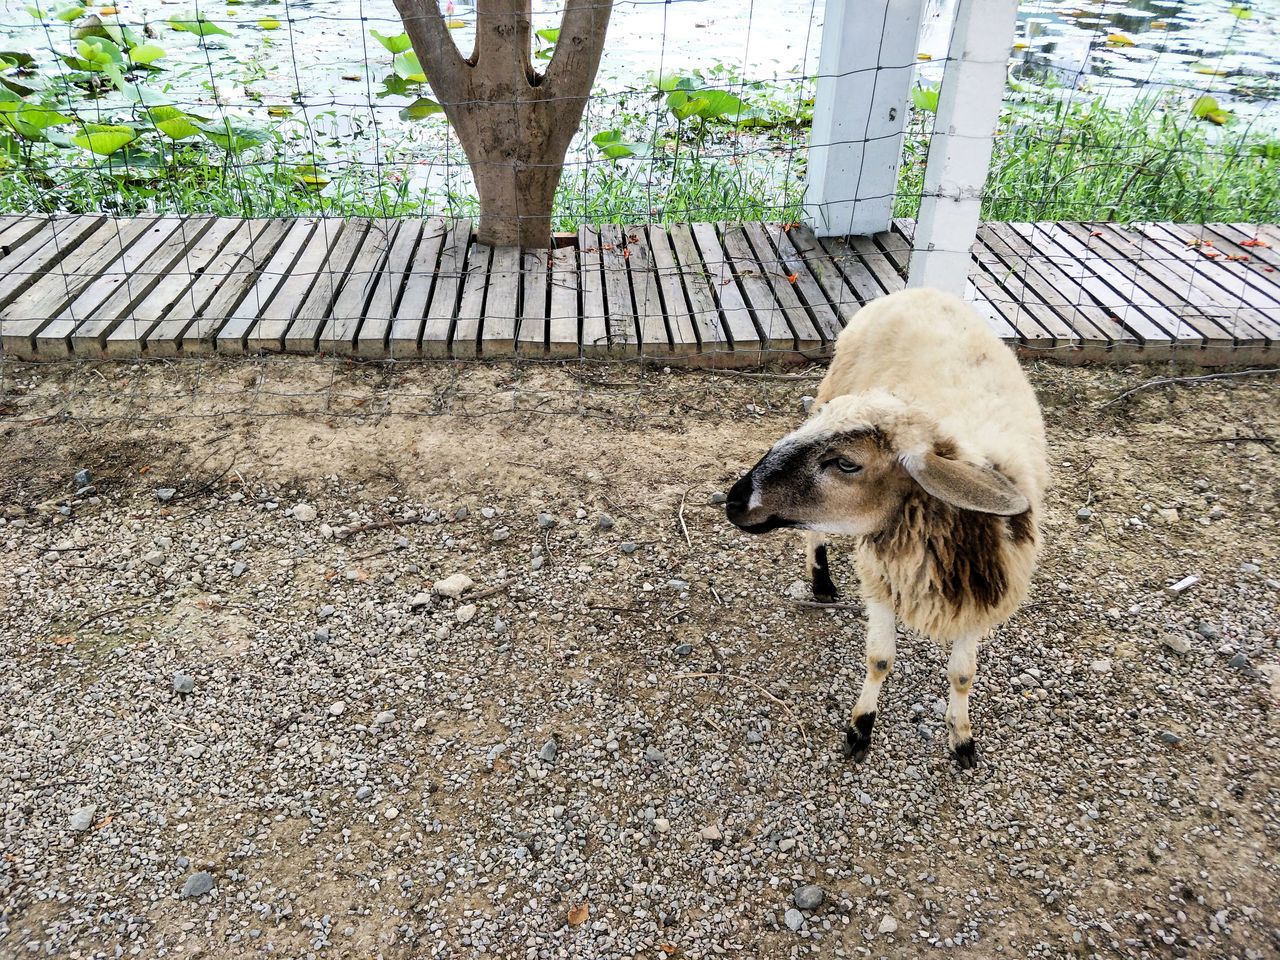 animal themes, one animal, day, mammal, domestic animals, outdoors, livestock, no people, nature, close-up